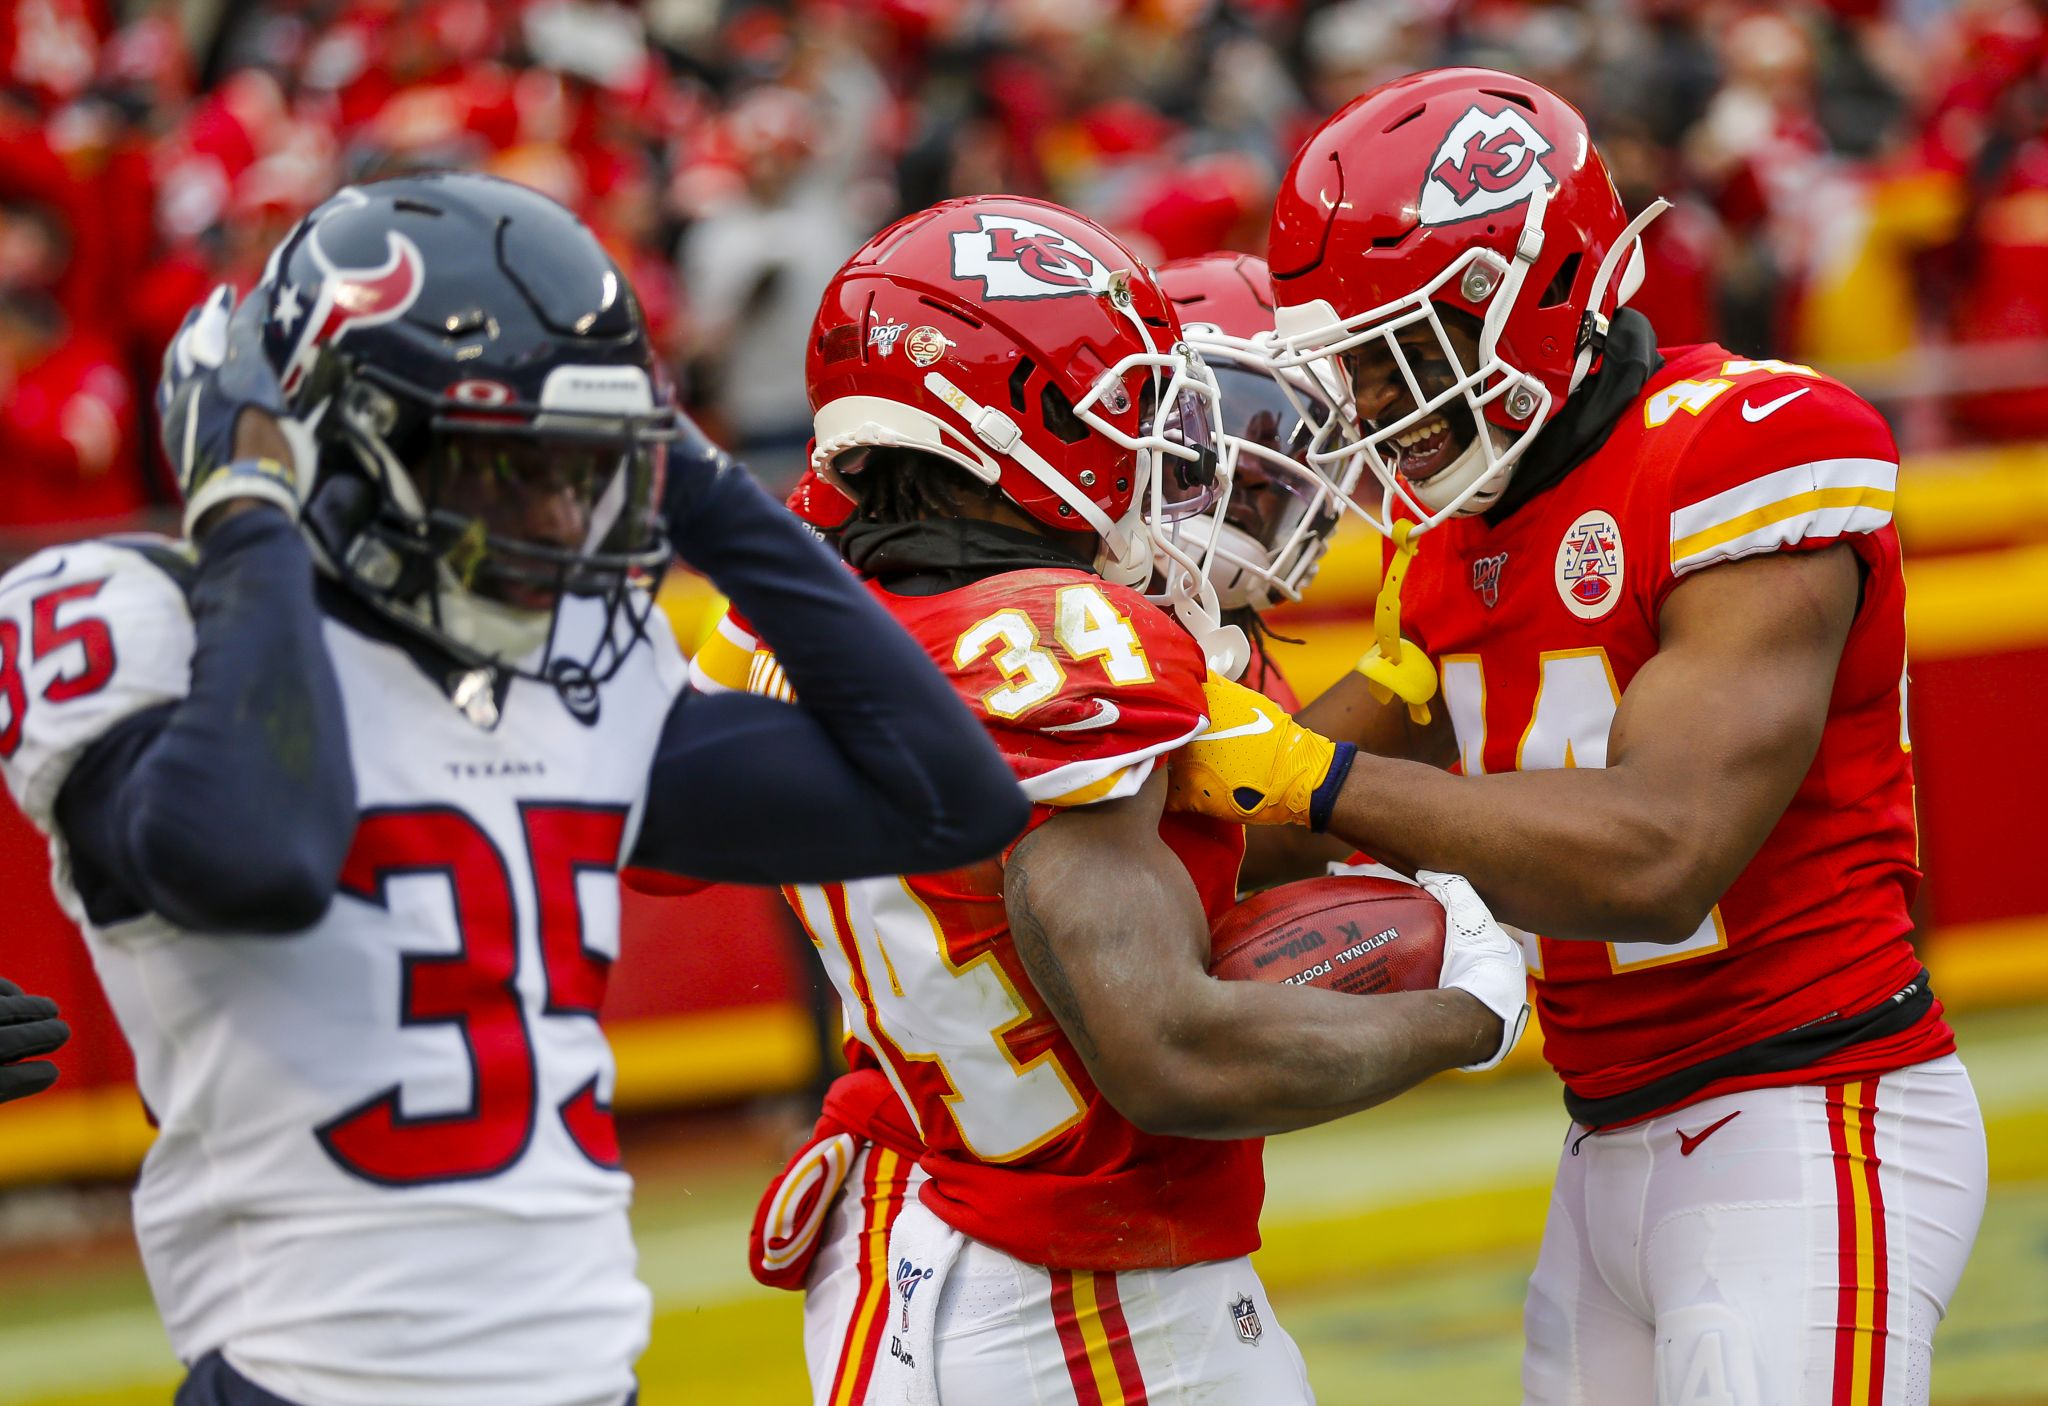 KC vs Houston was a great game to live bet